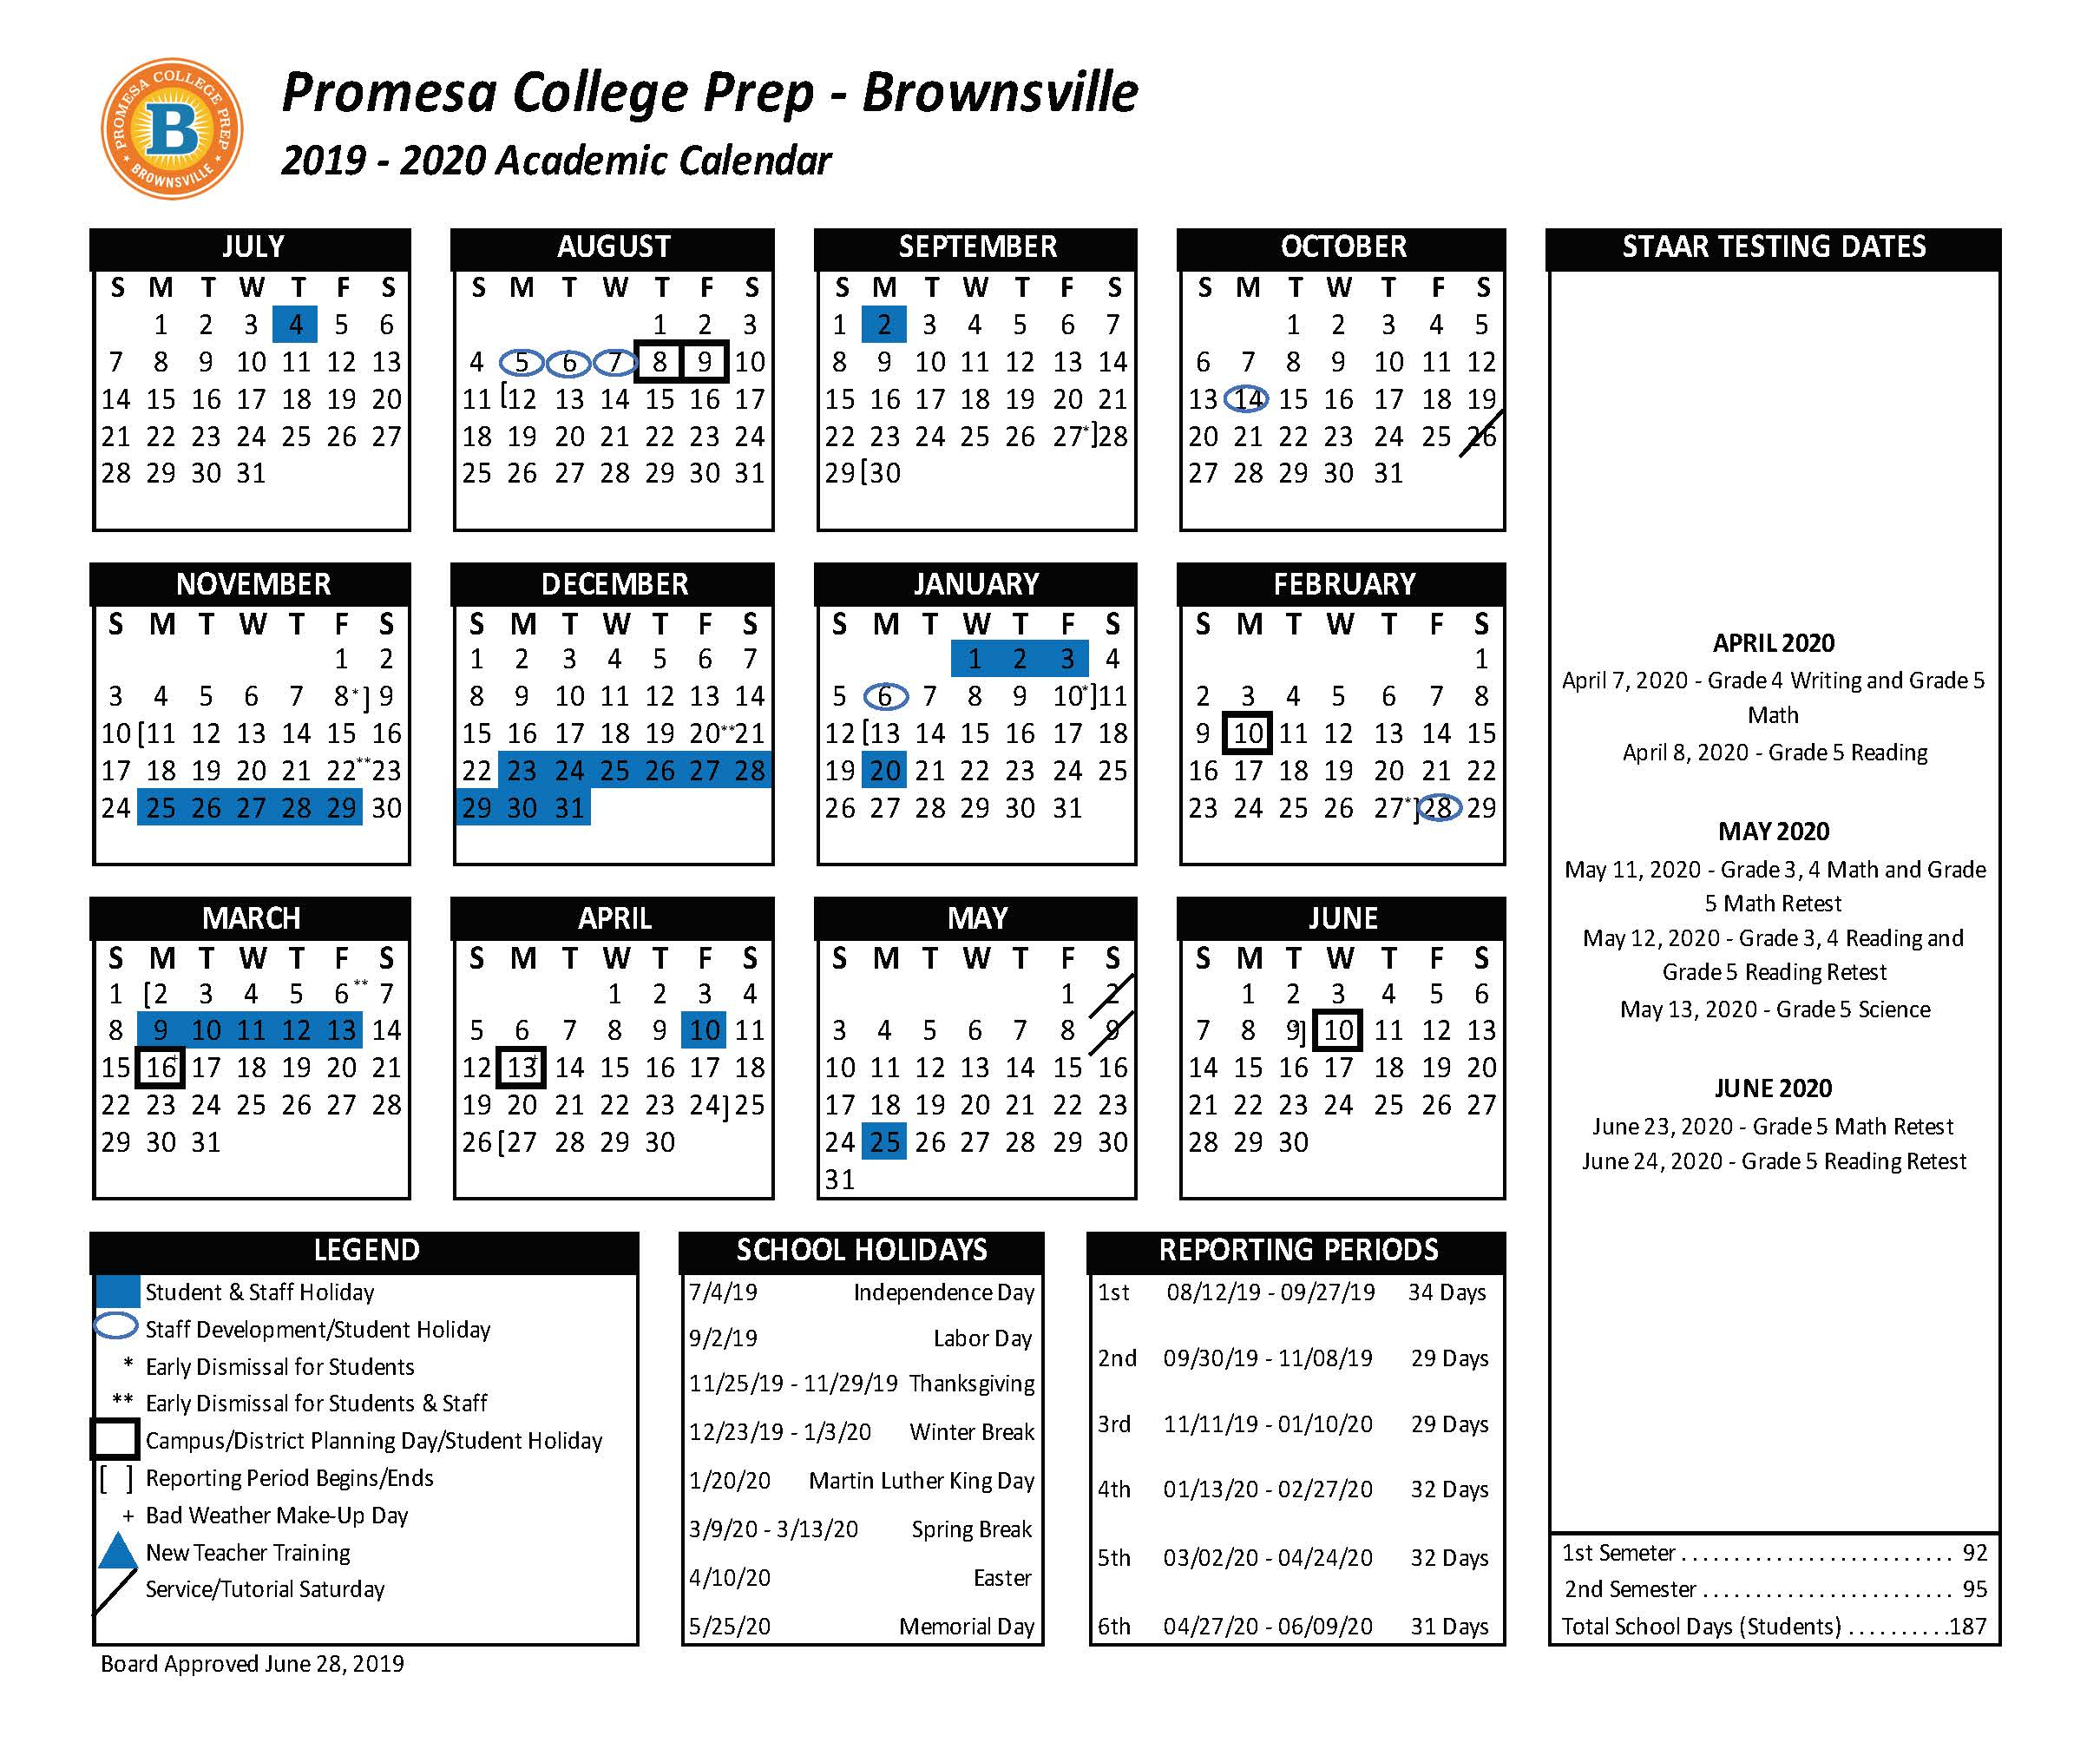 Academic Calendar - Promesa College Prep - Brownsville With Brownsville Isd Academic Calendar